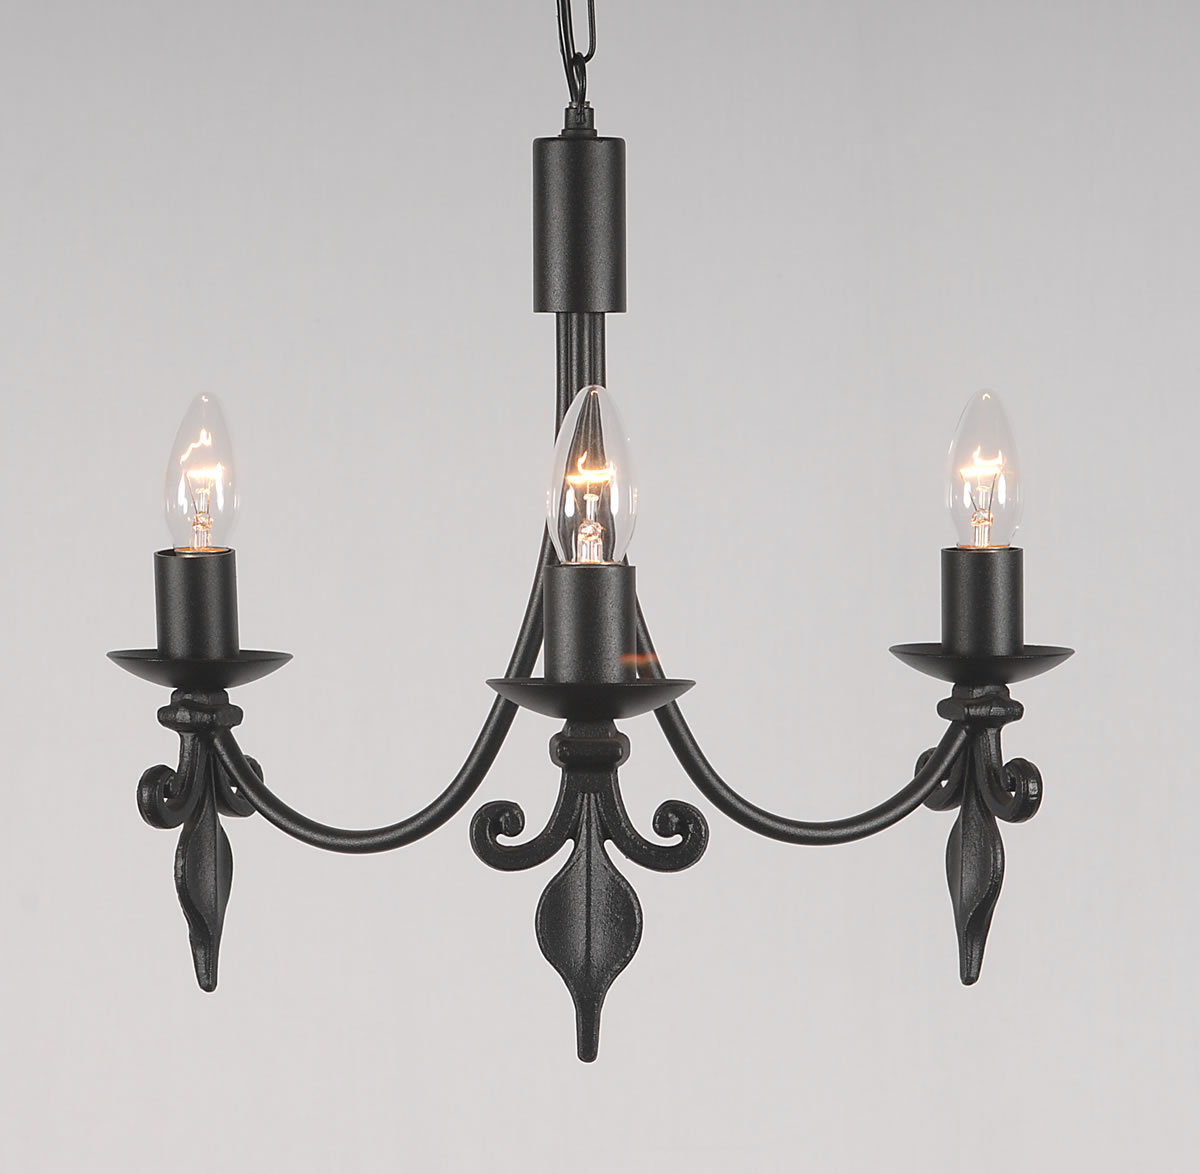 The fleur de lys 3 arm wrought iron candle ceiling light bespoke the fleur de lys collection 3 arm candle ceiling light mozeypictures